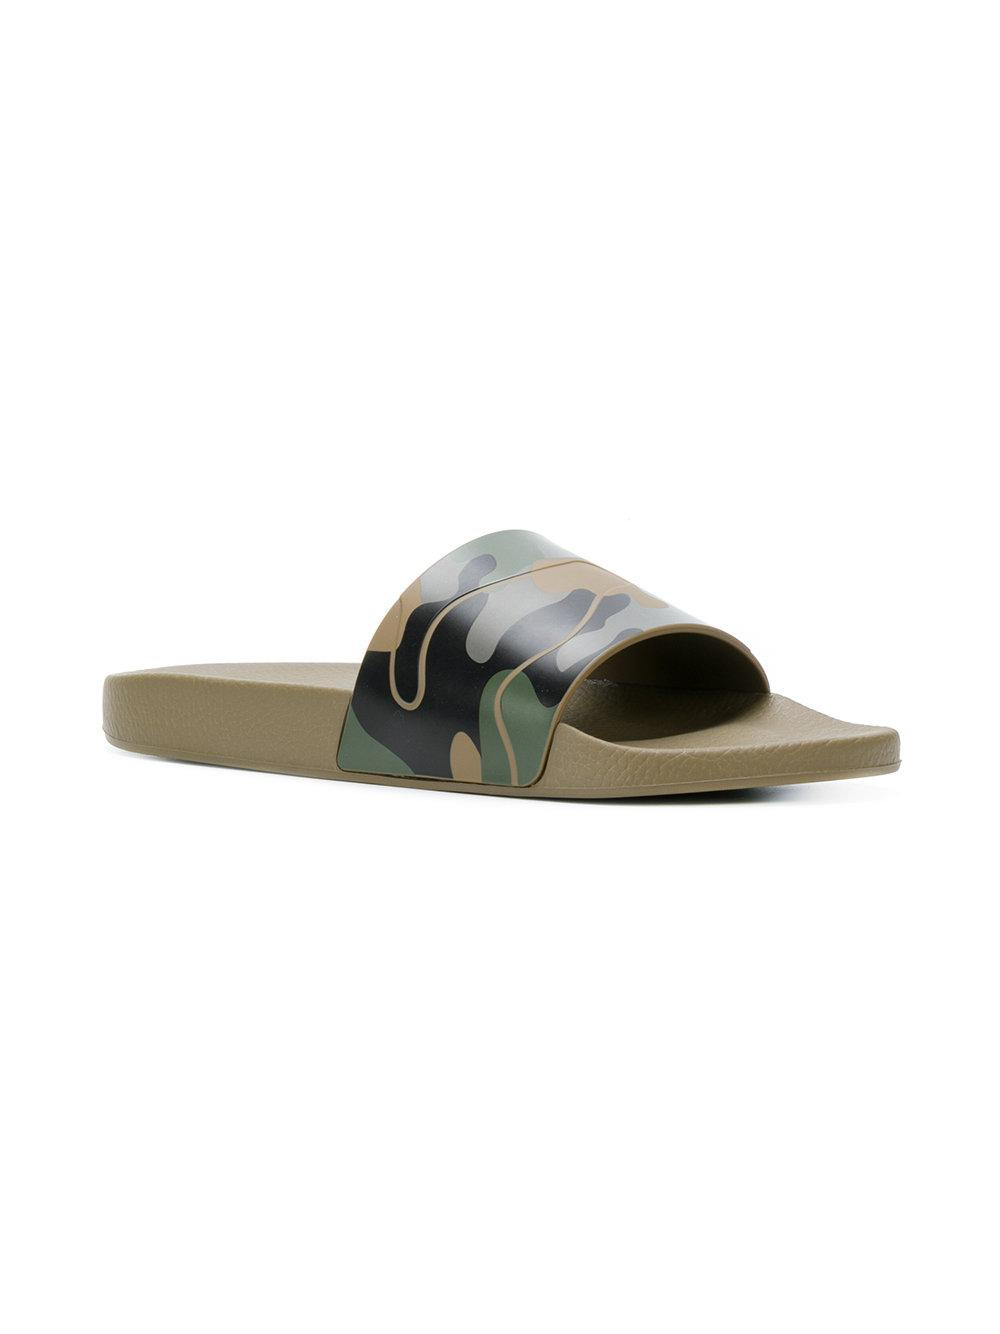 20beeab25664 Lyst - Valentino Green Camouflage Pool Slides in Green for Men - Save  50.22831050228311%